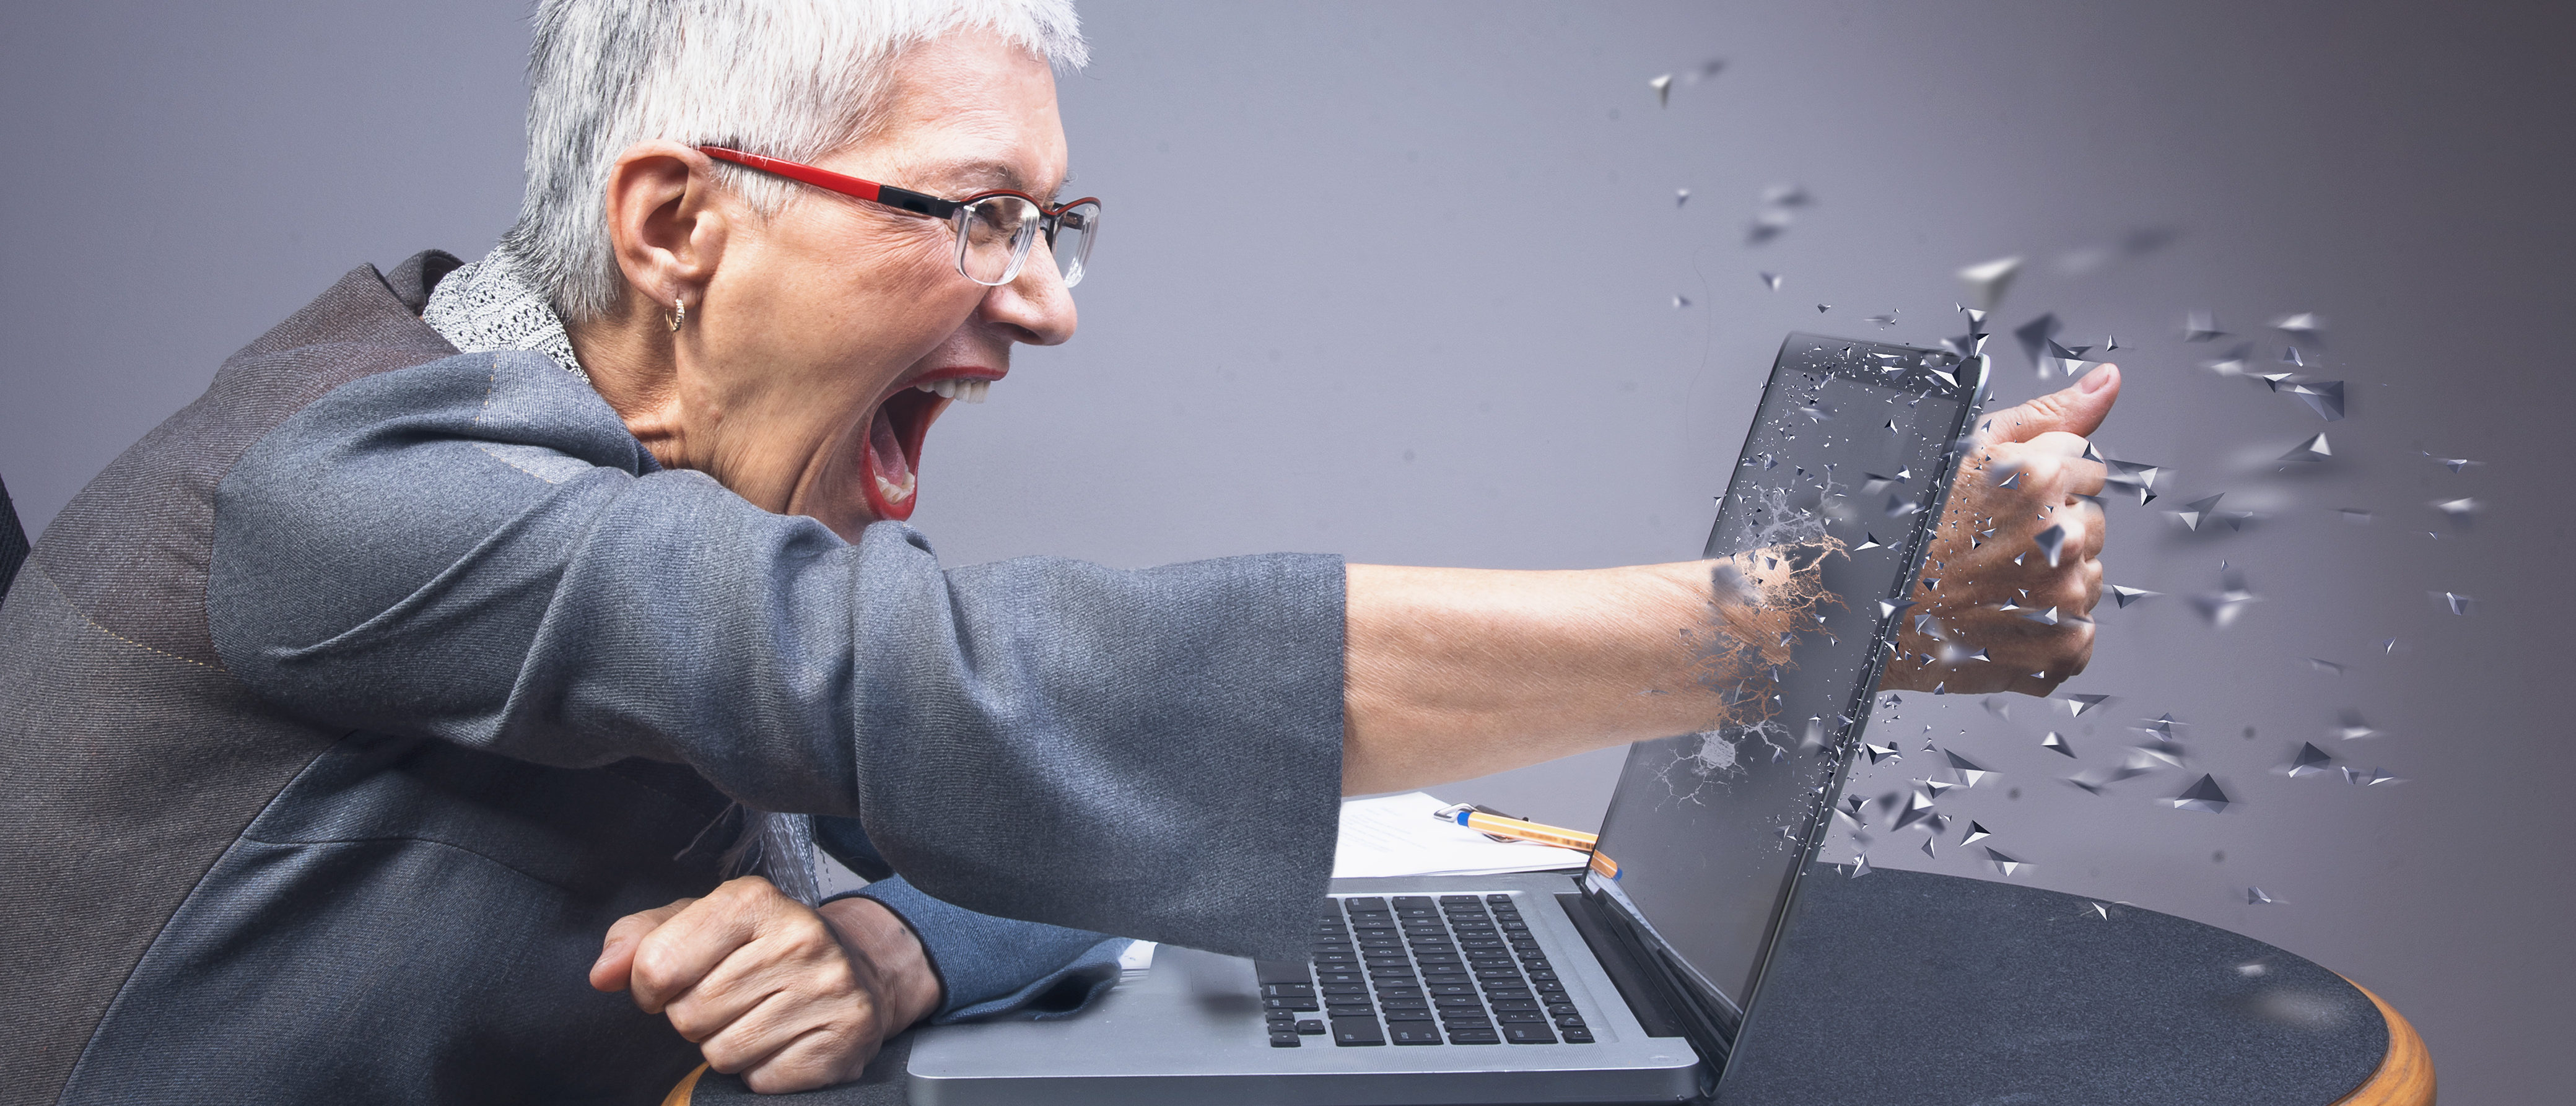 Elderly woman takes anger out on laptop. [Shutterstock, by TeodorLazarev]